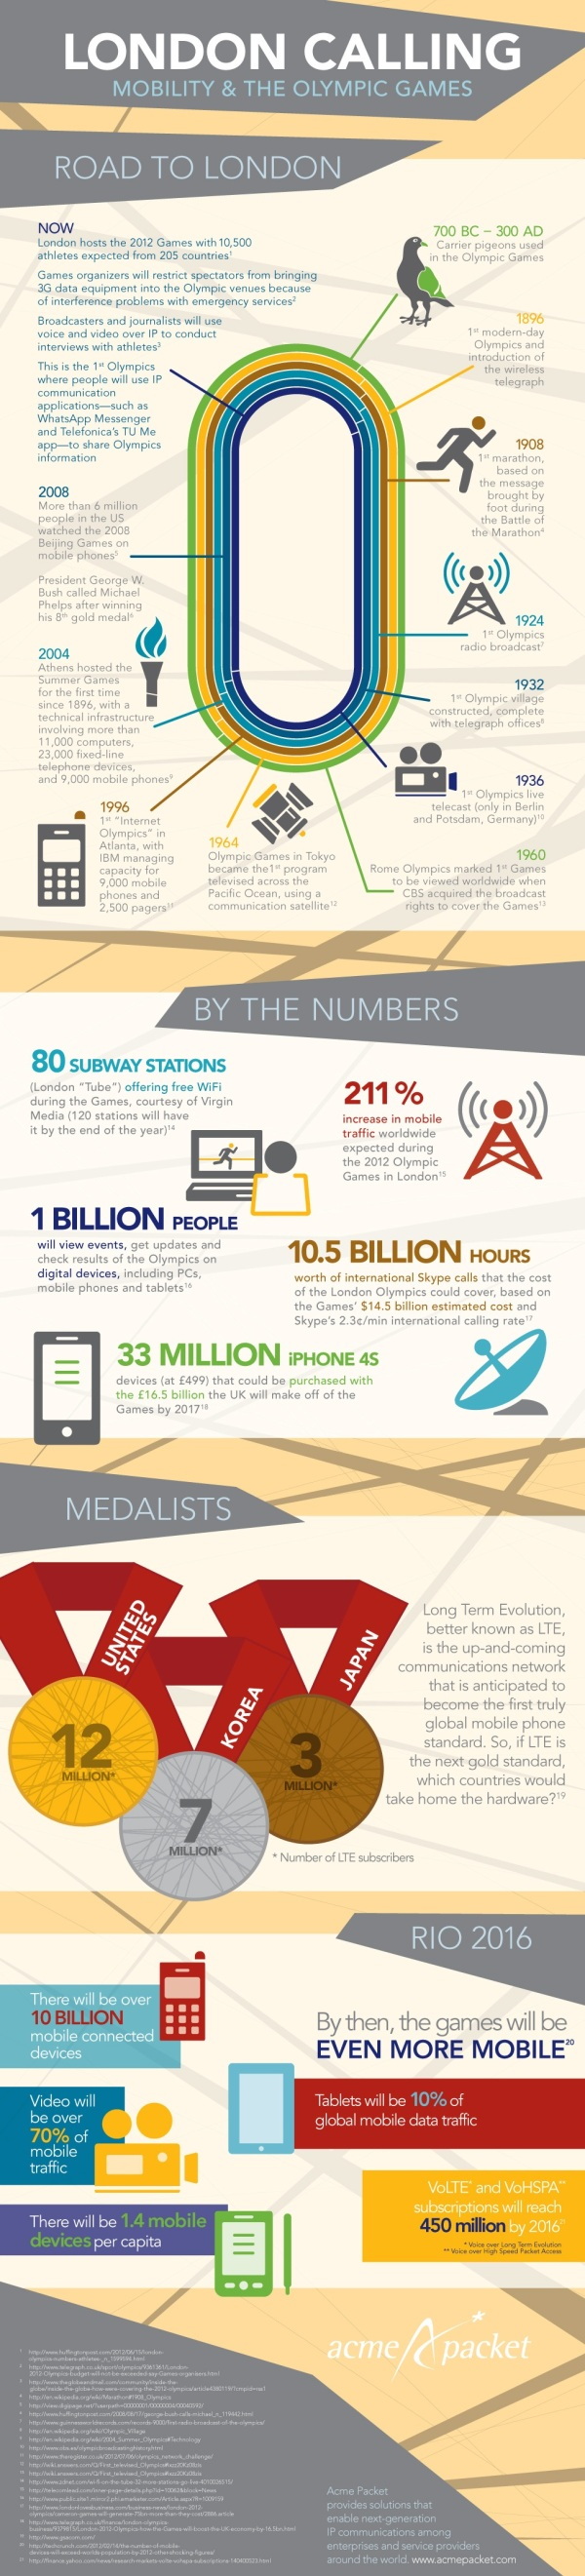 Pigeons to Present: The Evolution of Olympic Communication [INFOGRAPHIC]